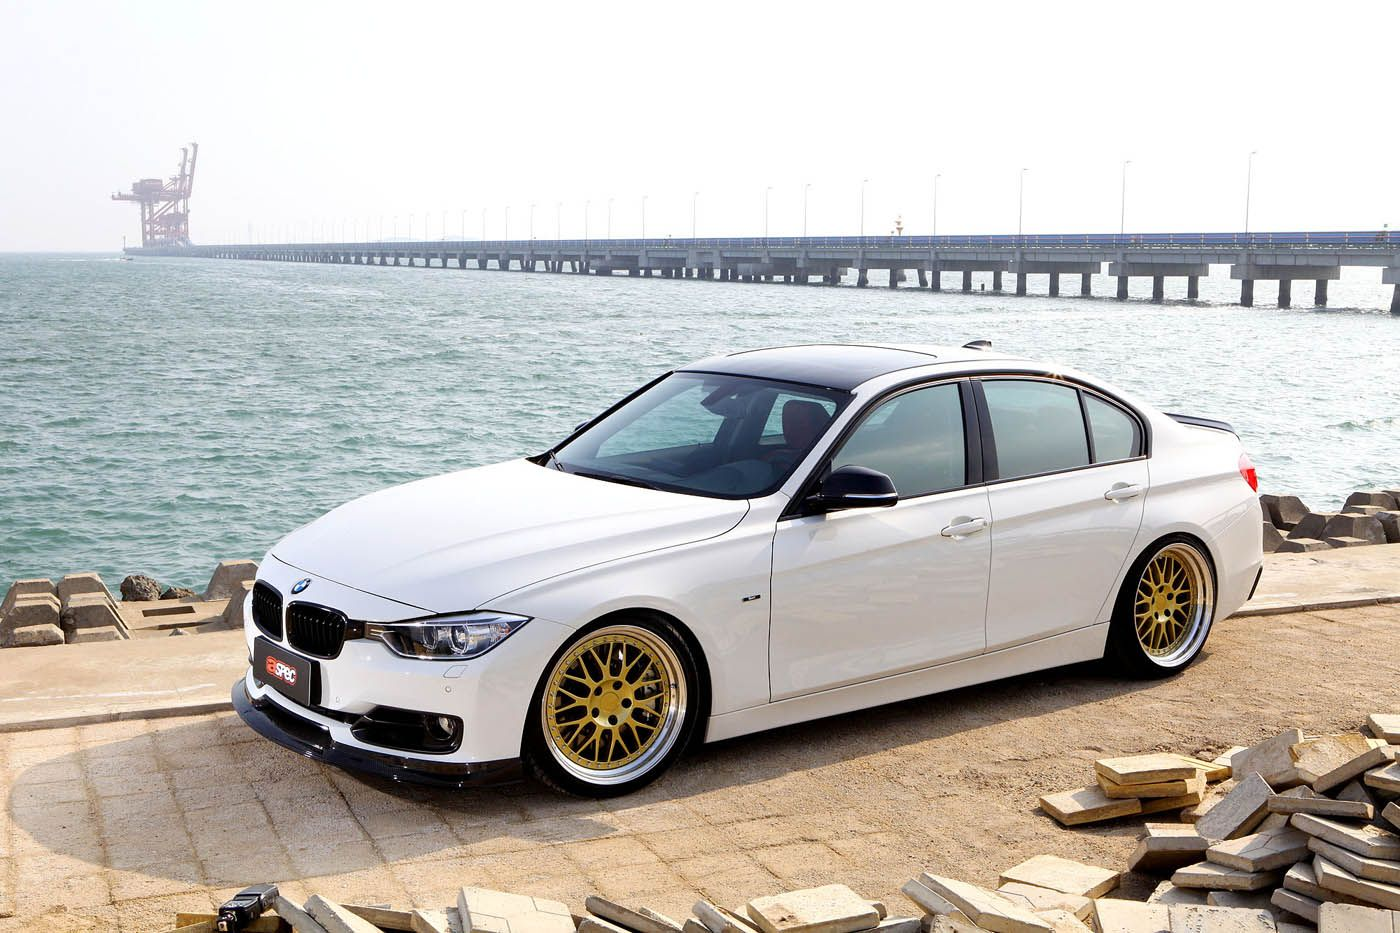 bmw f30 tuning 1 tuning bmw cars bmw cars. Black Bedroom Furniture Sets. Home Design Ideas